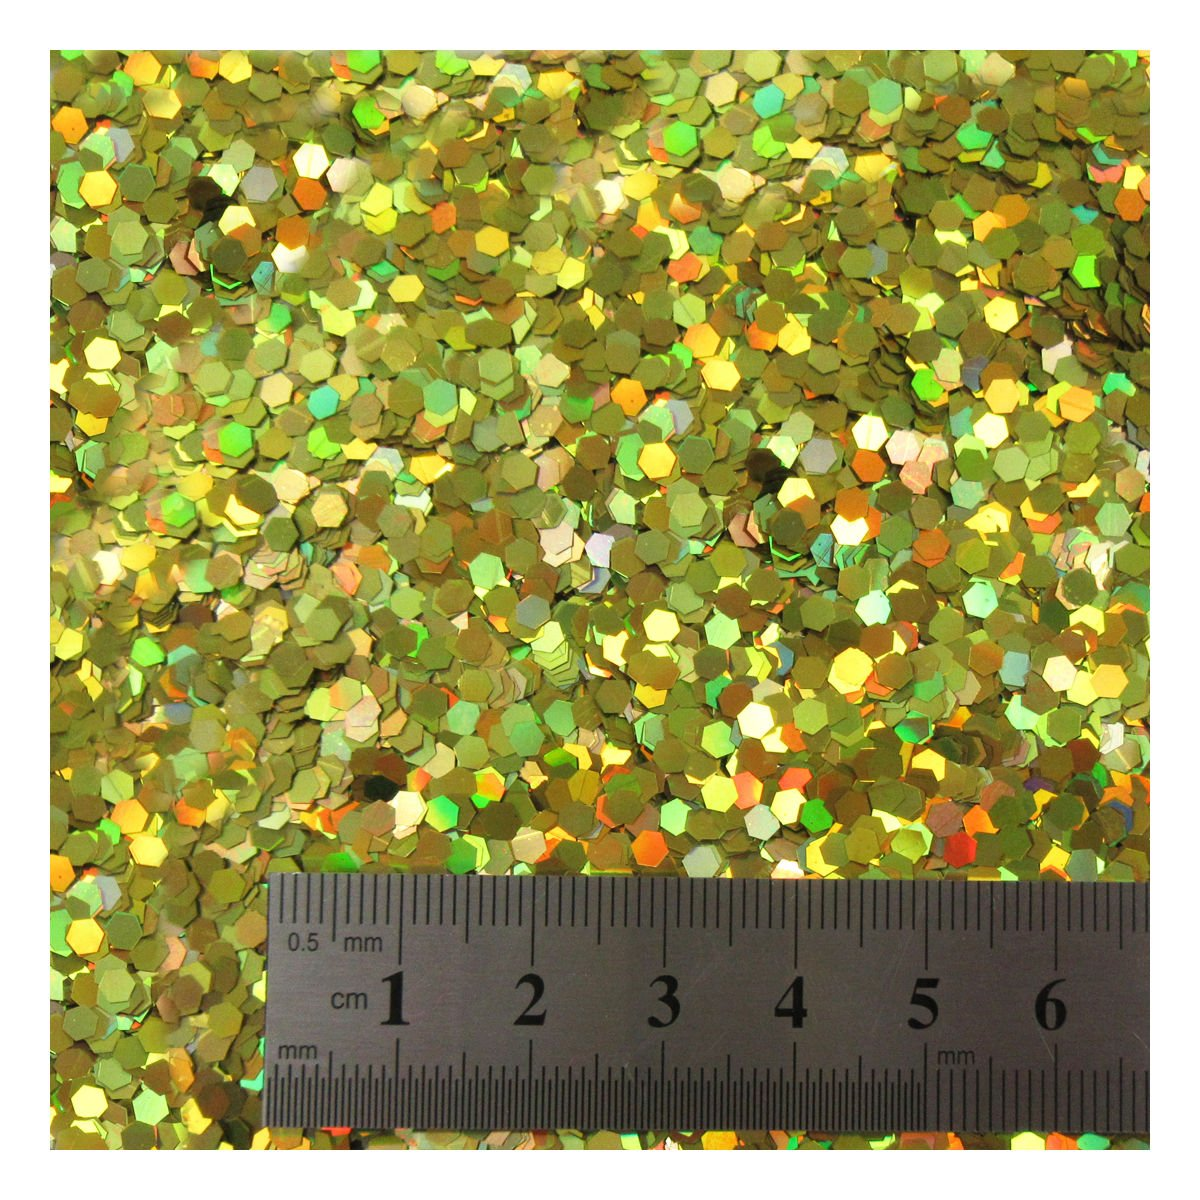 15 grams LARGE SILVER HOLOGRAPHIC GLITTER *4 SIZES* CRAFTS NAIL ART CARD MAKING UK (1/10 (C1443)) Beads4crafts